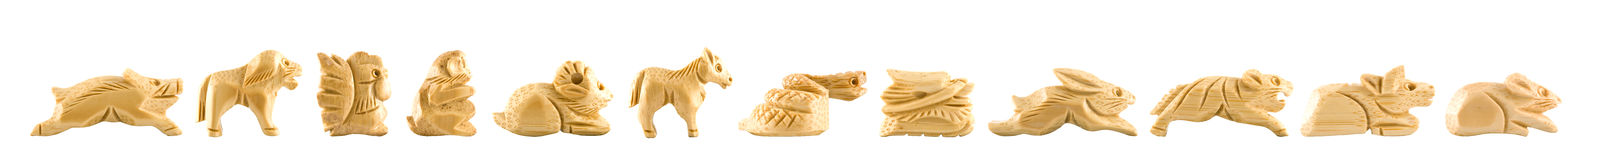 Sinal do chinês do Woodcarving Foto de Stock Royalty Free